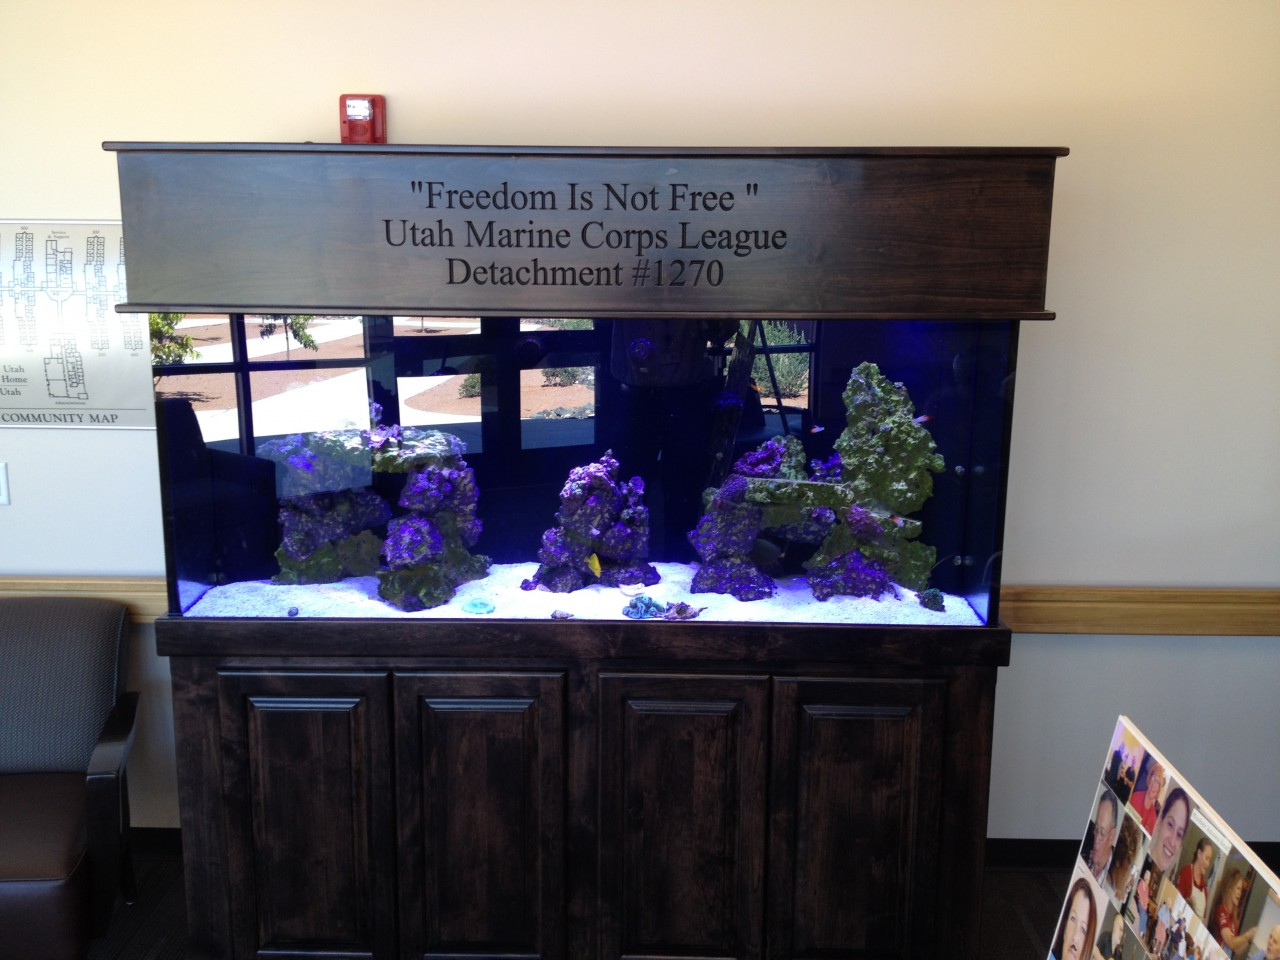 Southern Utah Veterans Home Hosts Dedication of Donated Salt Water Aquarium